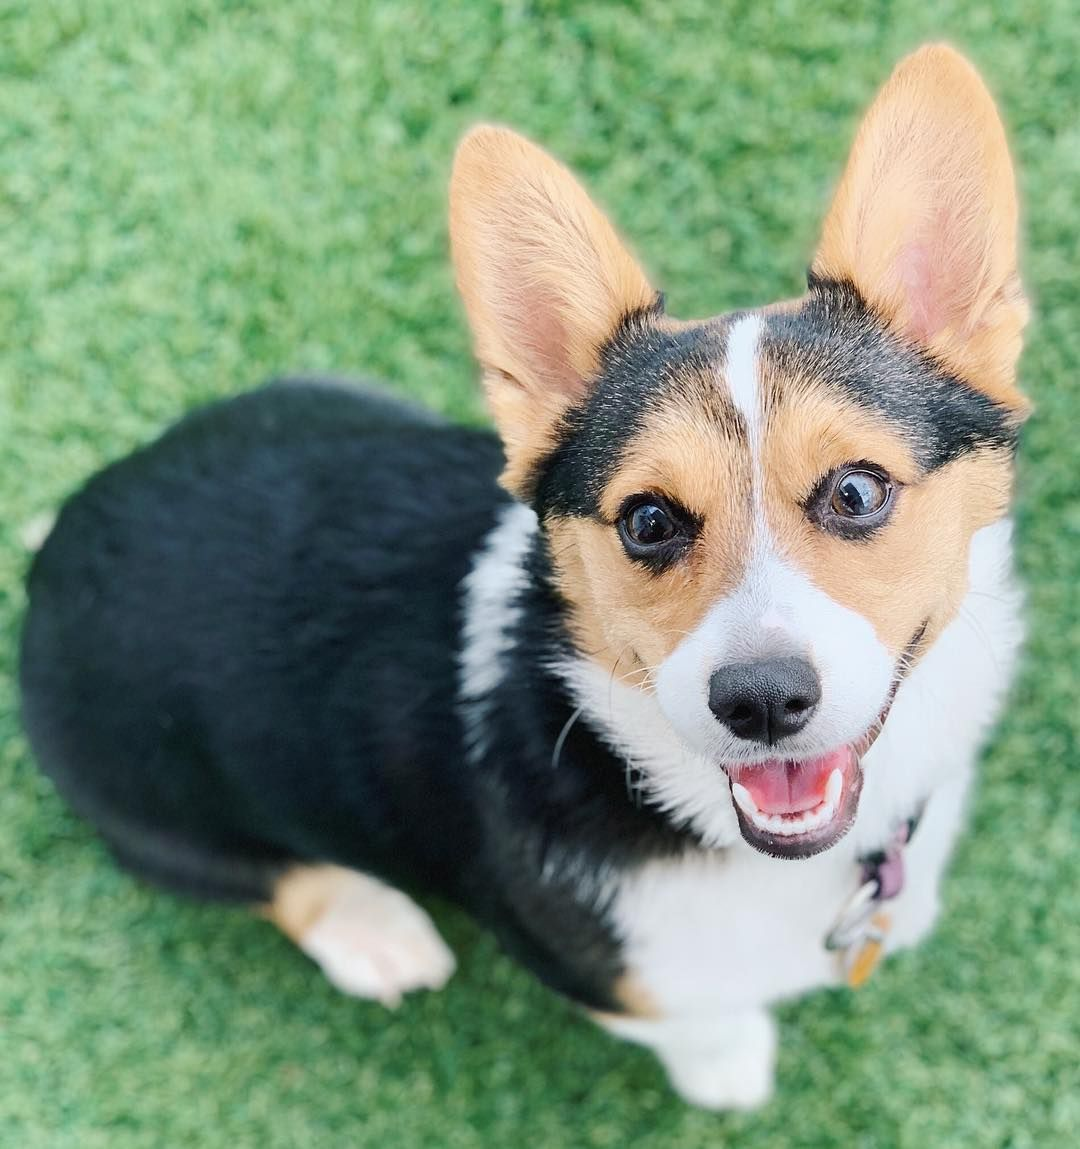 Puppy Training How To Train A Puppy Tips Tricks Corgipuppies